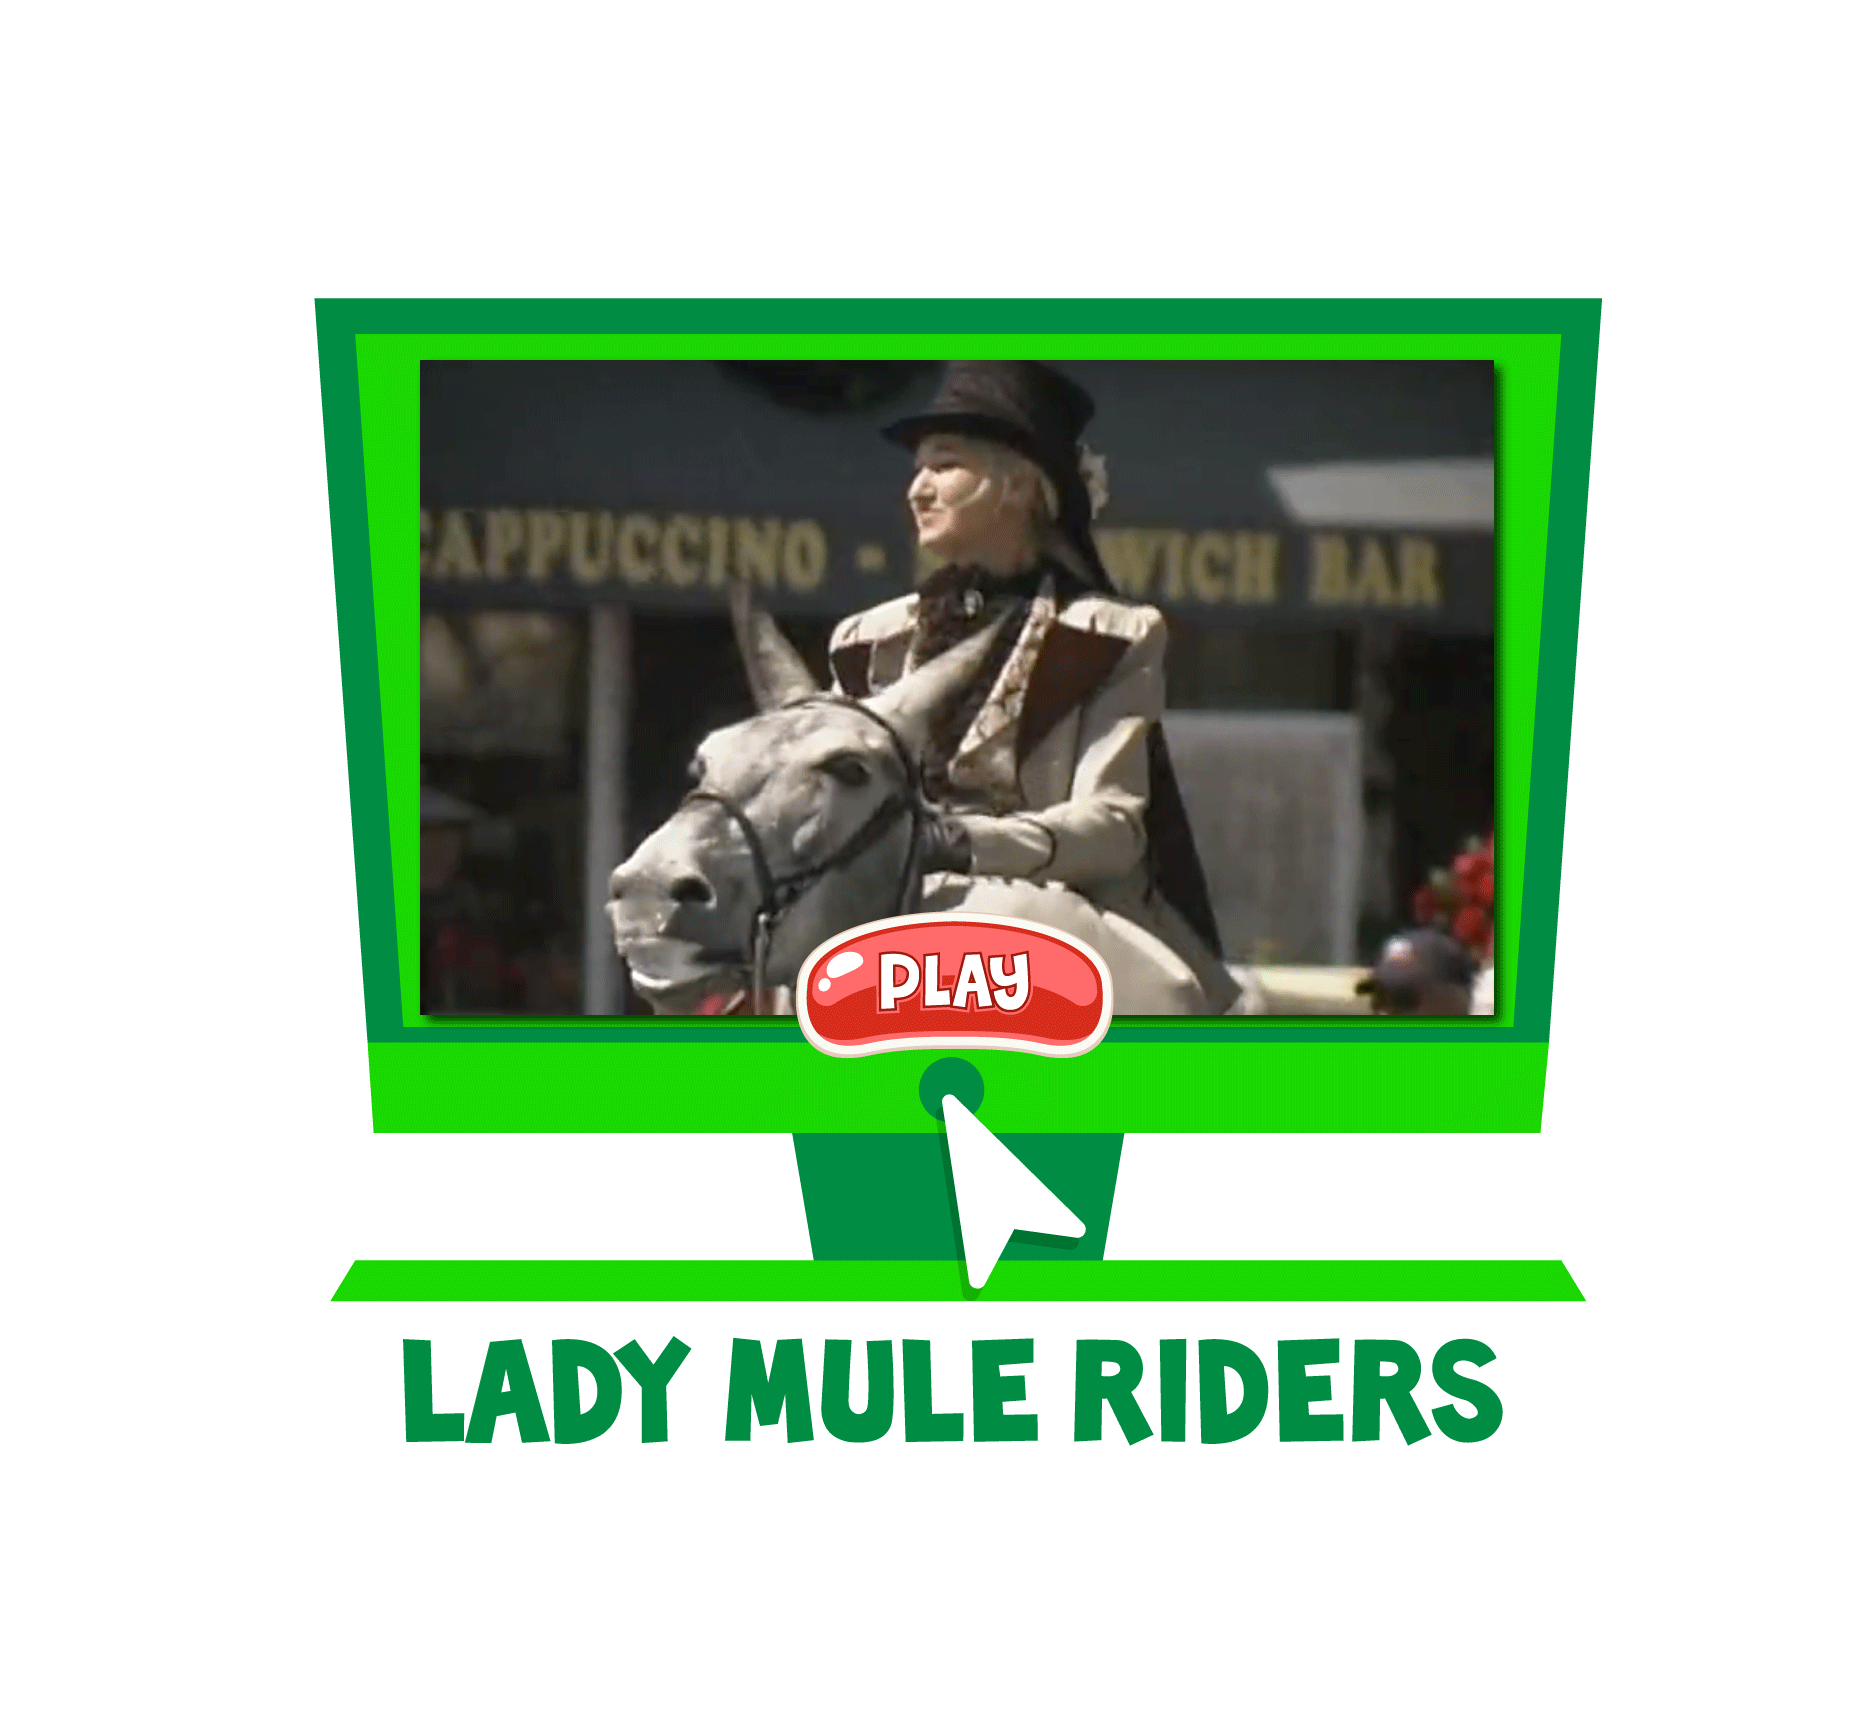 Jasper-Website-Video-Icon_LADY_MULE_RIDERS